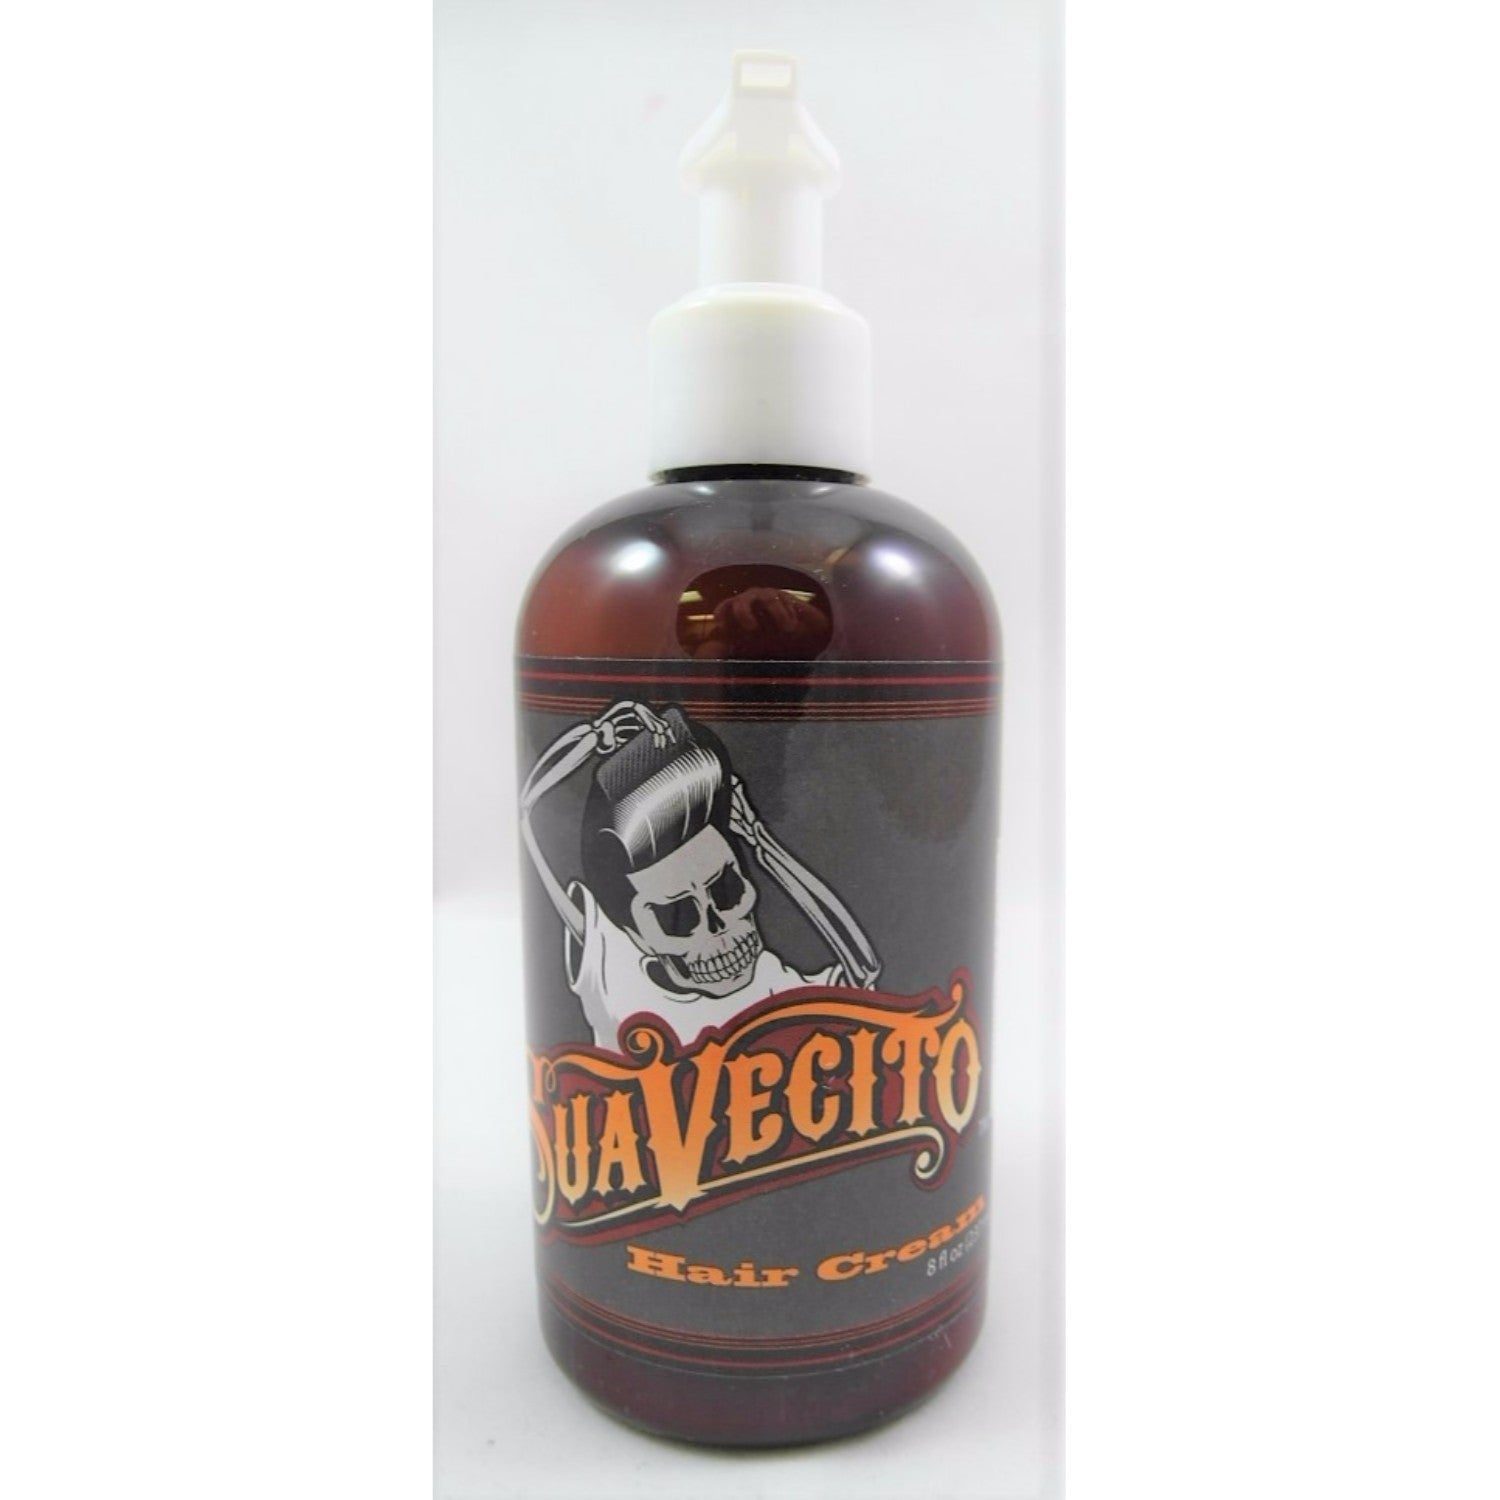 Suavecito Brilliant Creme 8 oz